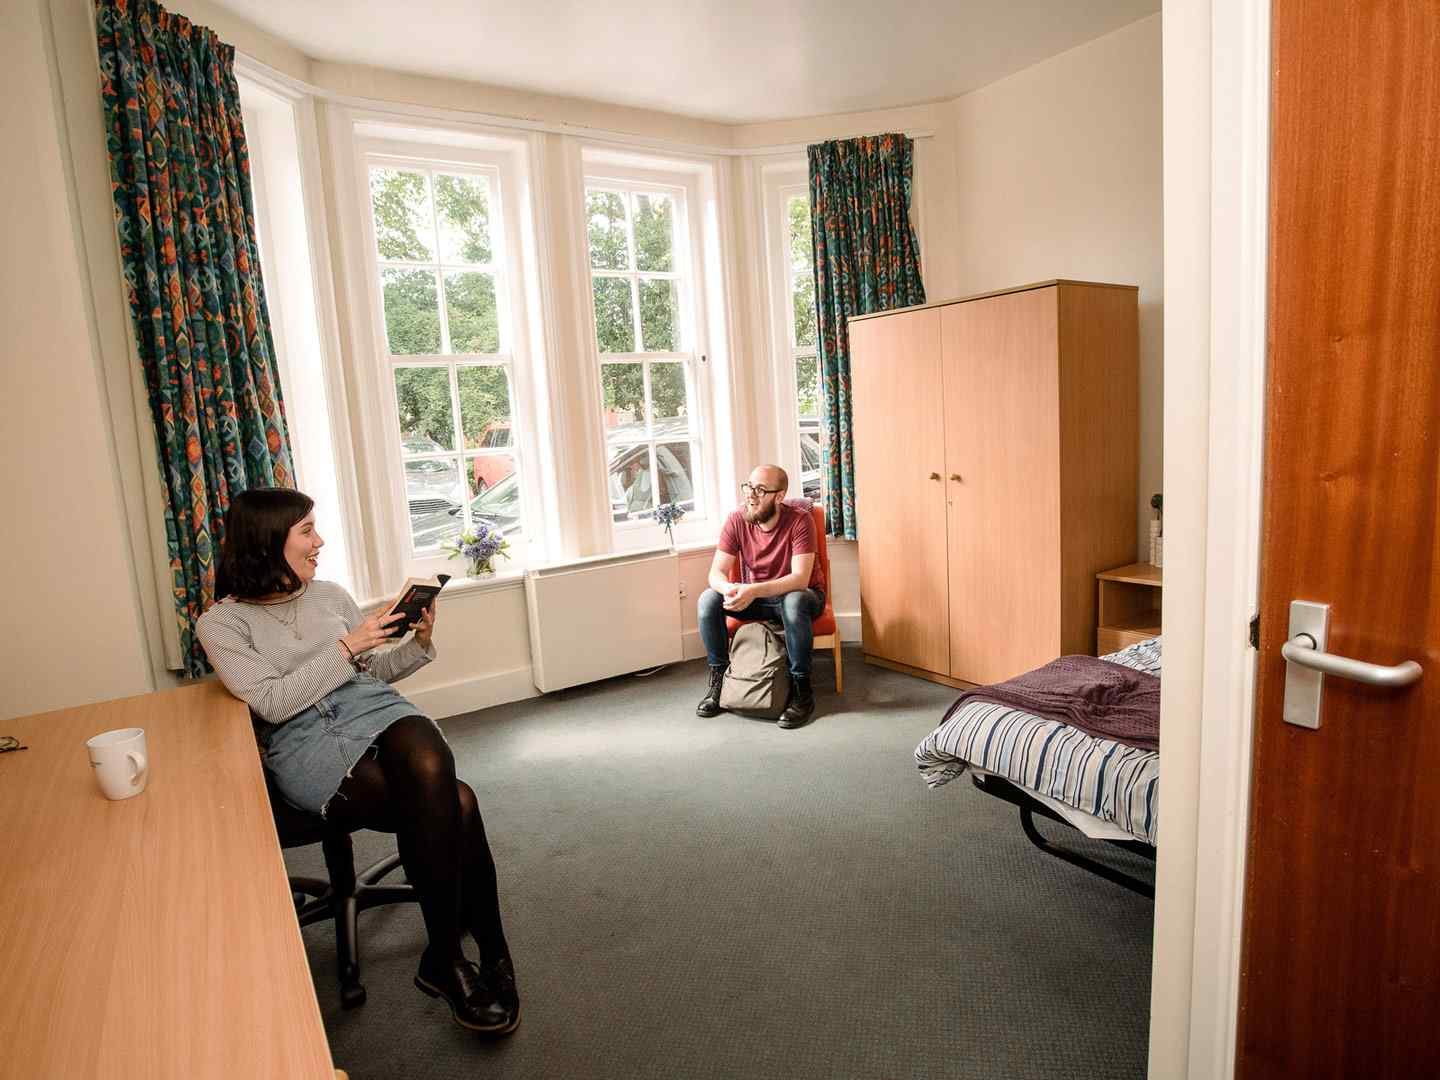 Two students sitting and chatting in a large ensuite room at City Residence. A large bay window is on the far wall, with a desk and wardrobe visible on either side.